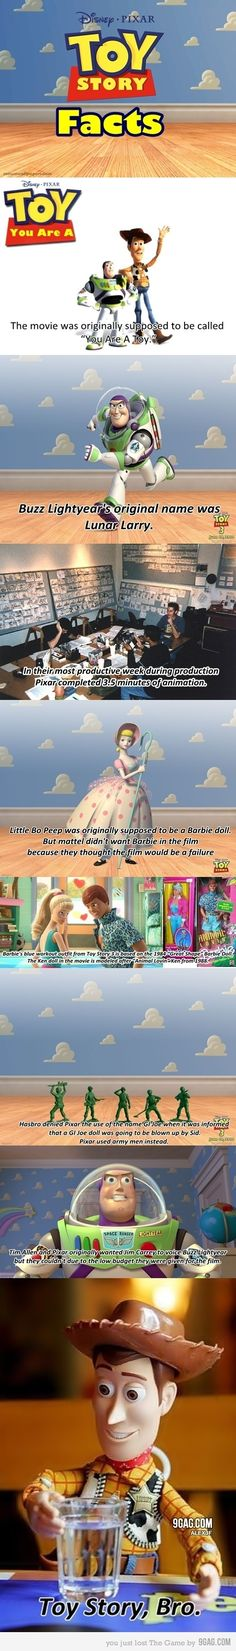 Stuff you didn't know about Toy Story. <3